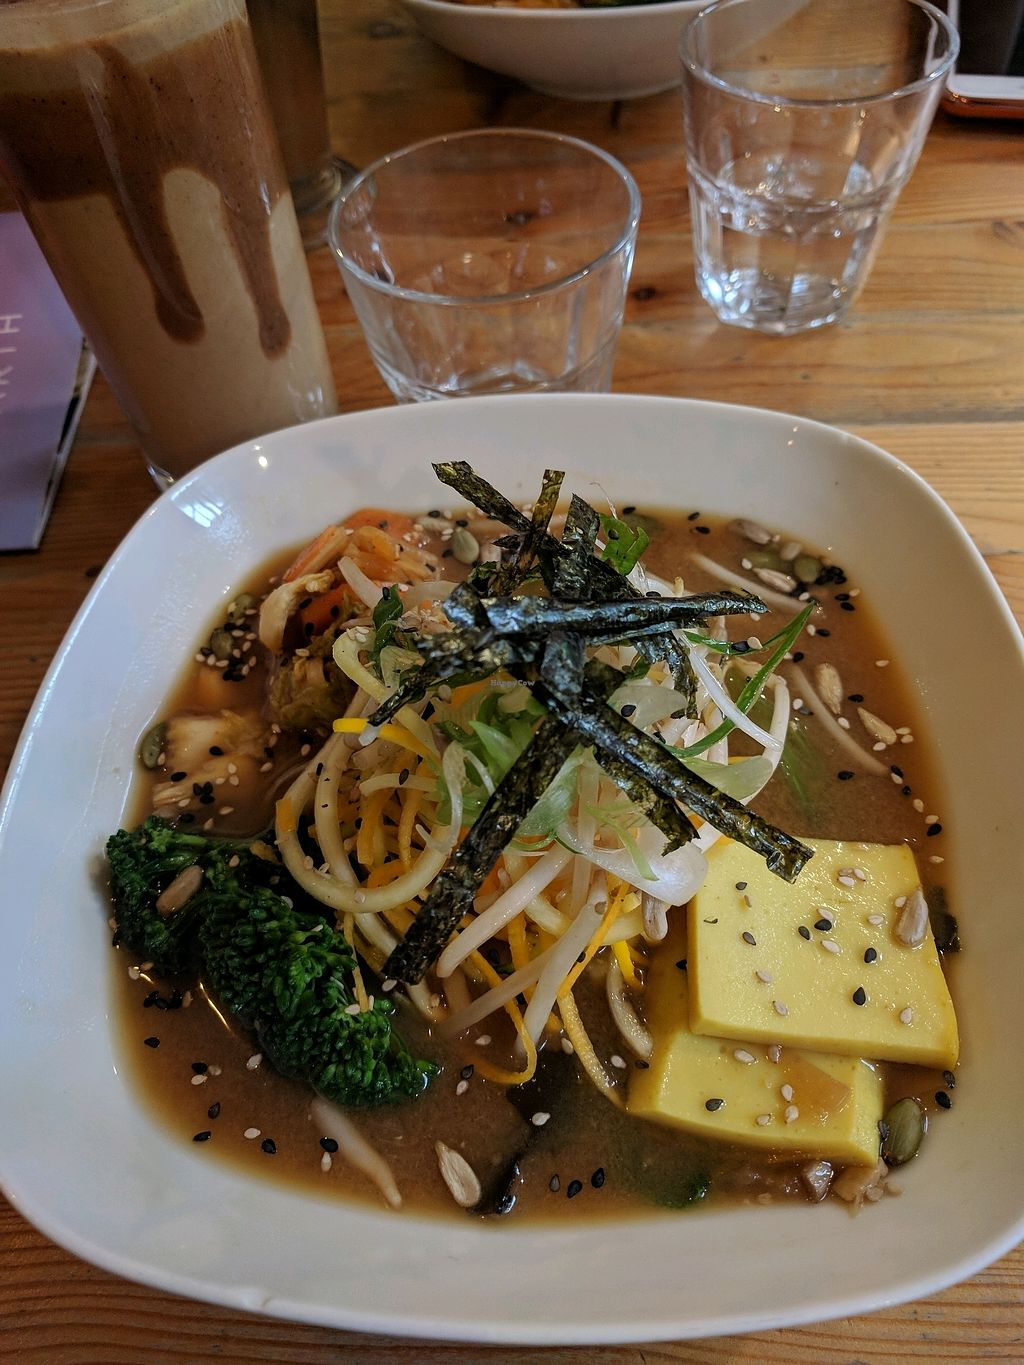 """Photo of Wild Food Cafe  by <a href=""""/members/profile/SanFer"""">SanFer</a> <br/>Raw Ramen <br/> April 13, 2018  - <a href='/contact/abuse/image/31440/385033'>Report</a>"""